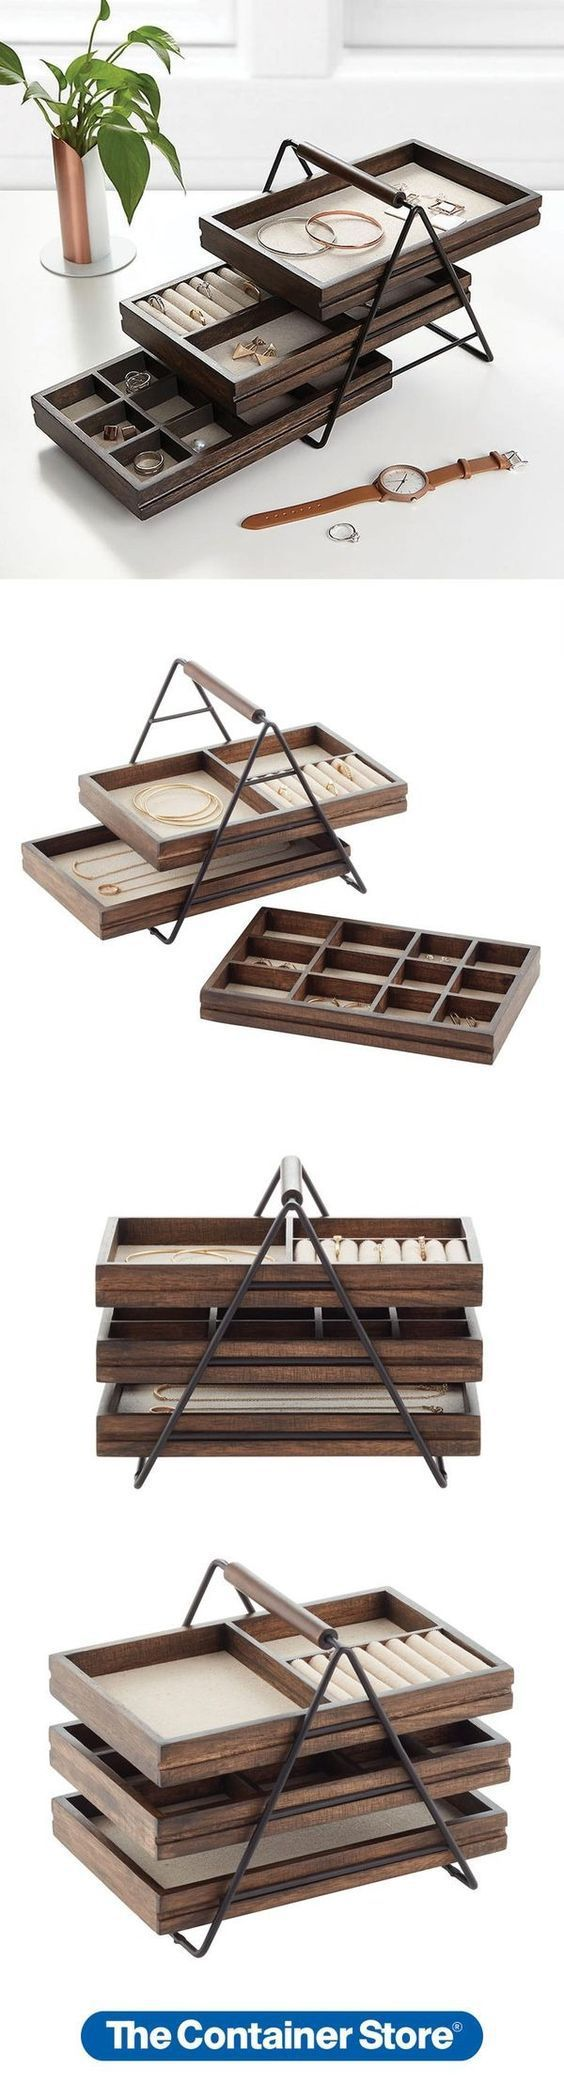 Umbra Terrace Jewelry Organizer Dresser Minimal and Trays